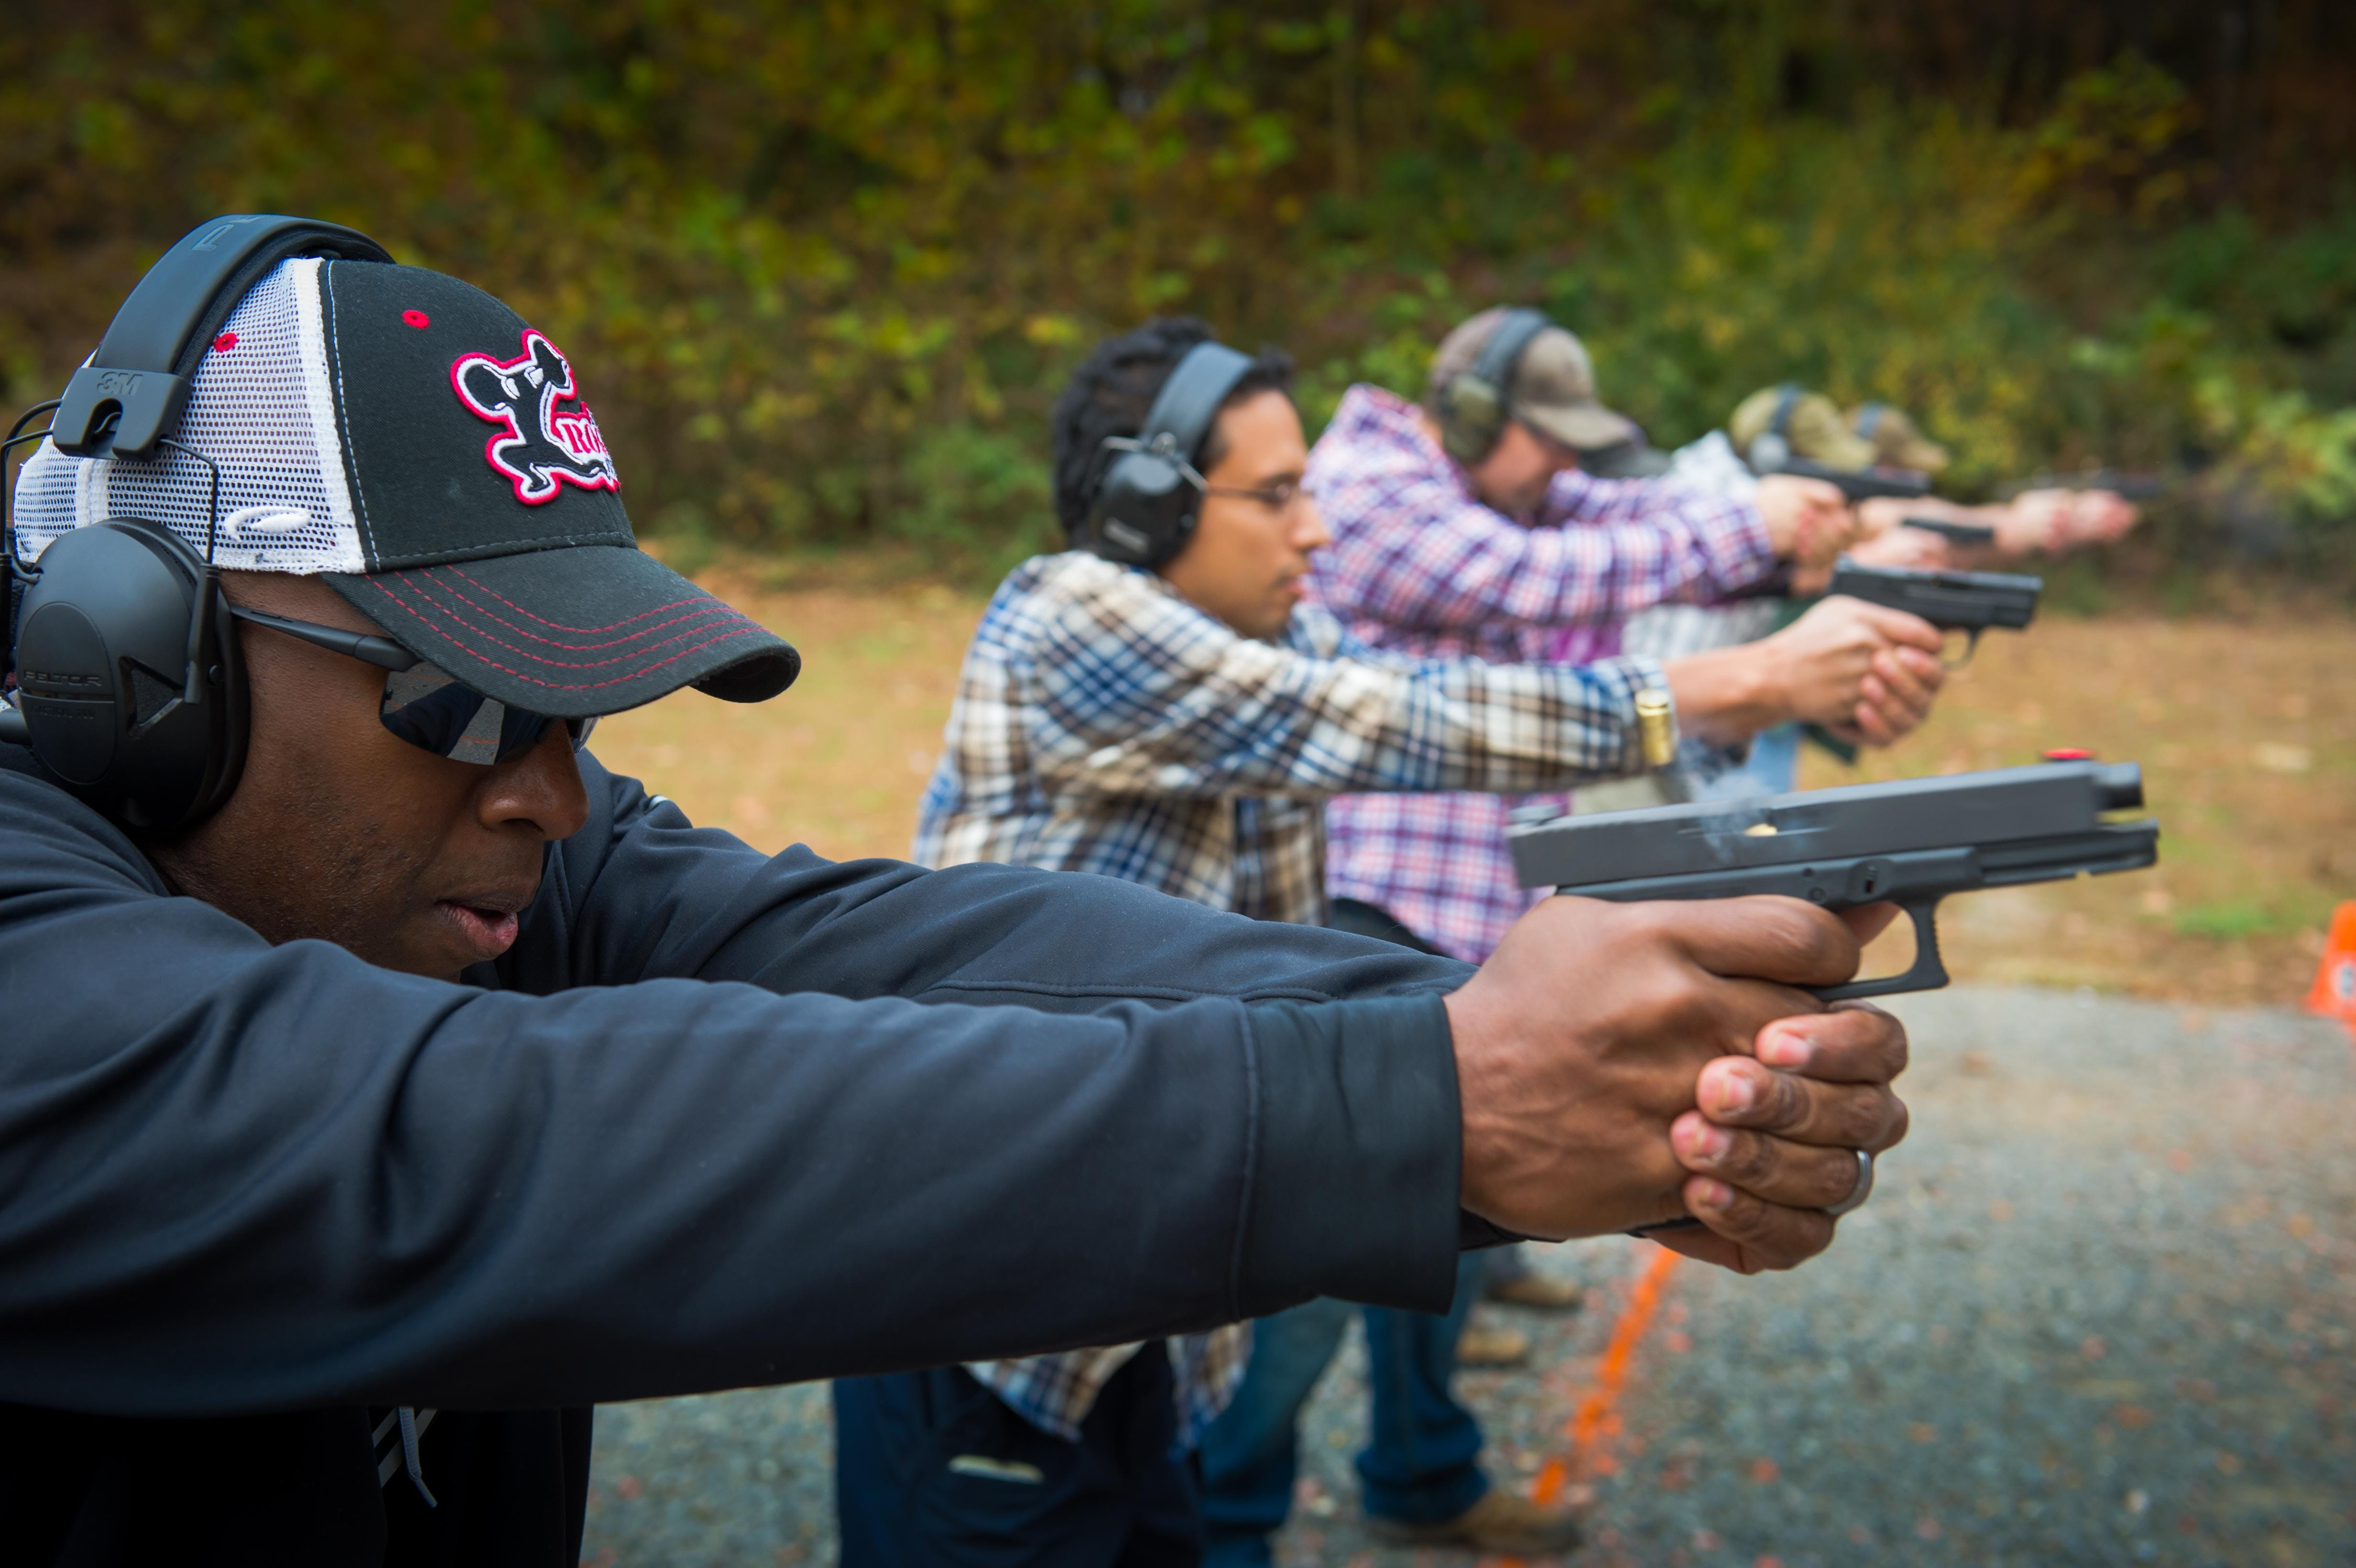 Concealed Carry: Advanced Skills & Tactics (West Palm Beach, FL)